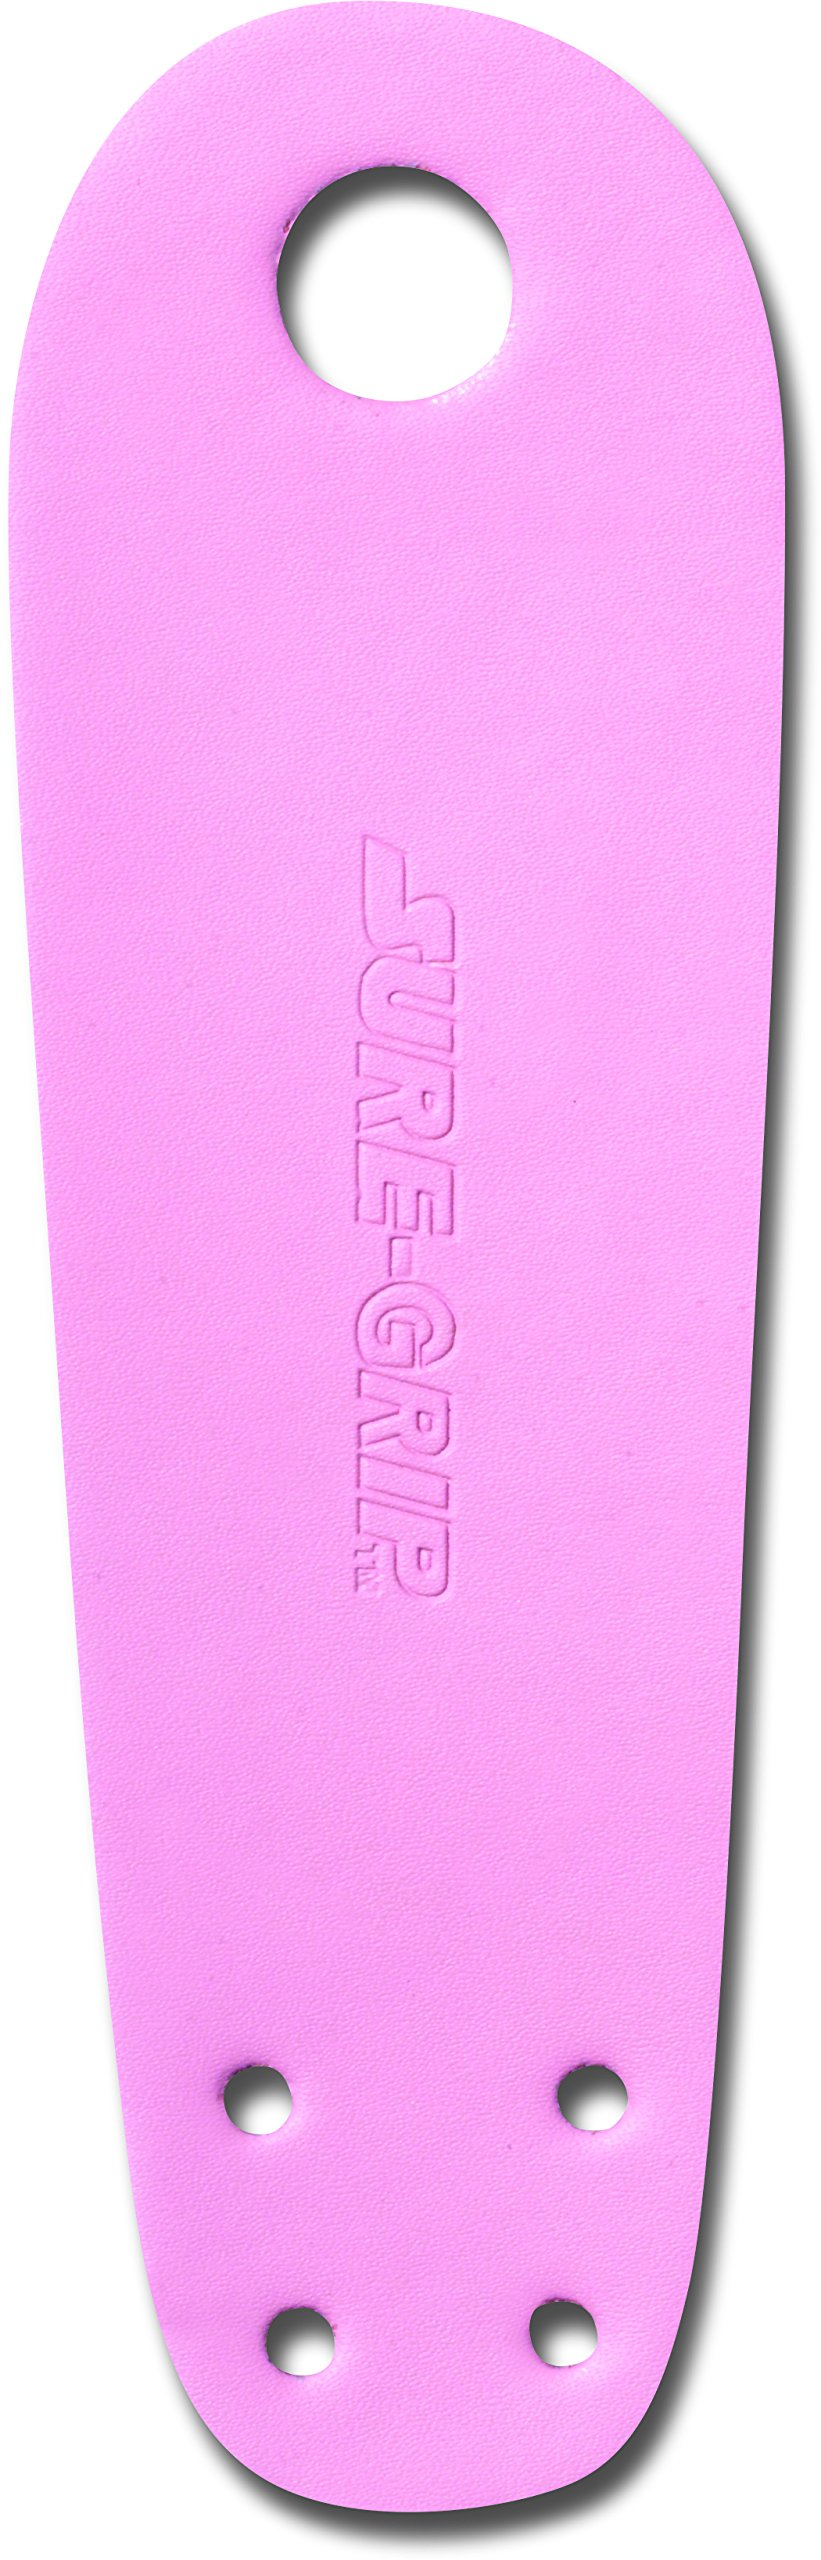 Sure-Grip Leather Toe Guards for Roller Skate - Pink